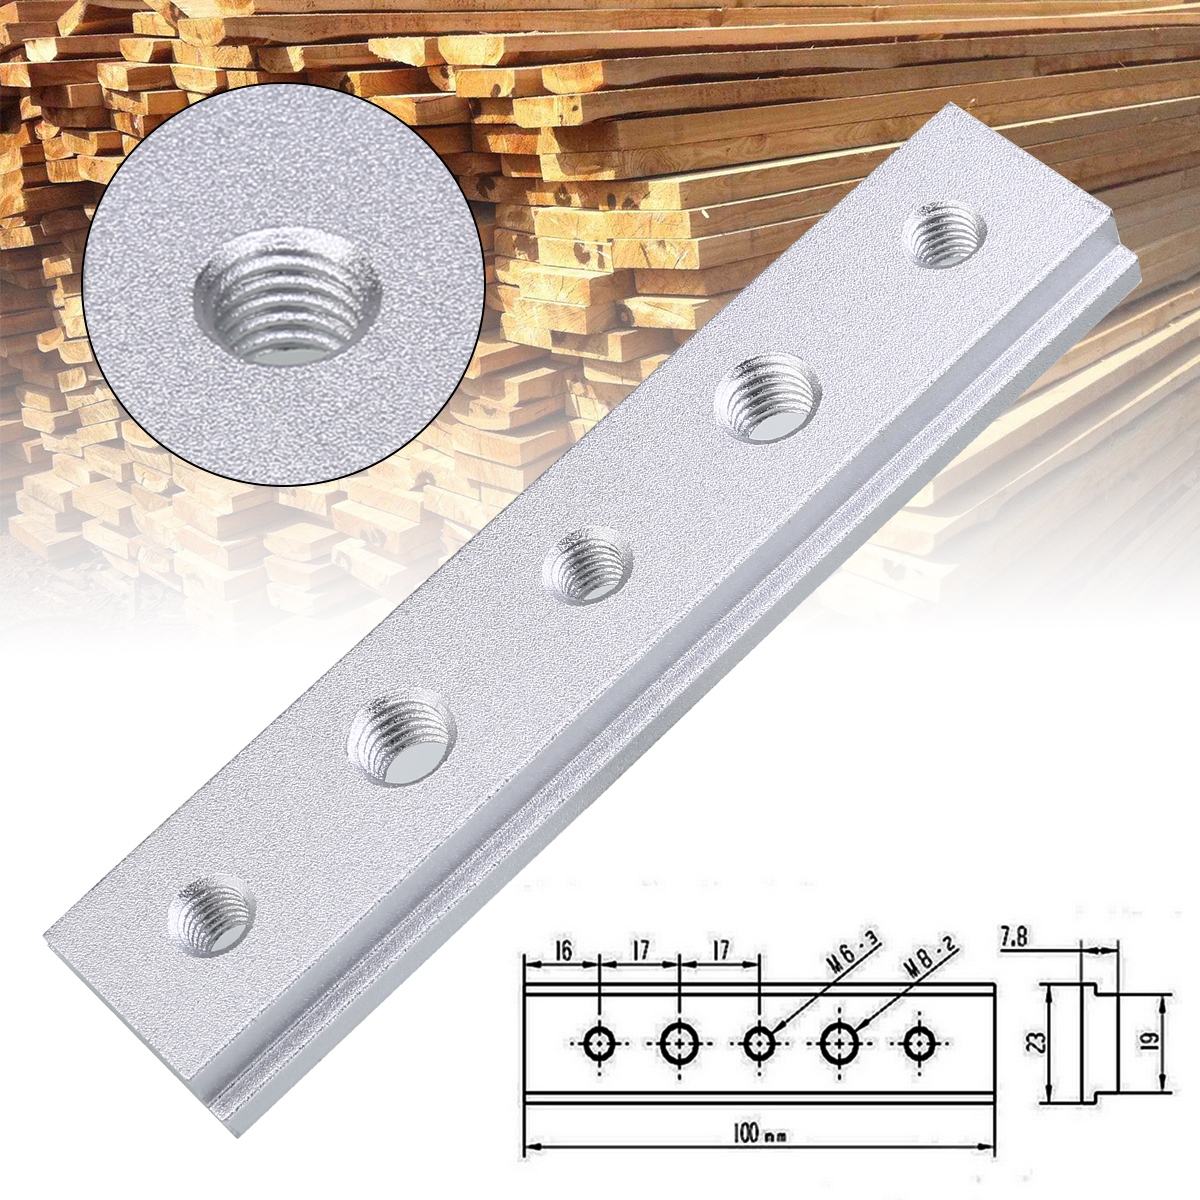 M6 M8 Thread 100mm Aluminium Alloy T-Slot T-Track Miter Track Jig Fixture For Table Saw Router Table Woodworking Tool